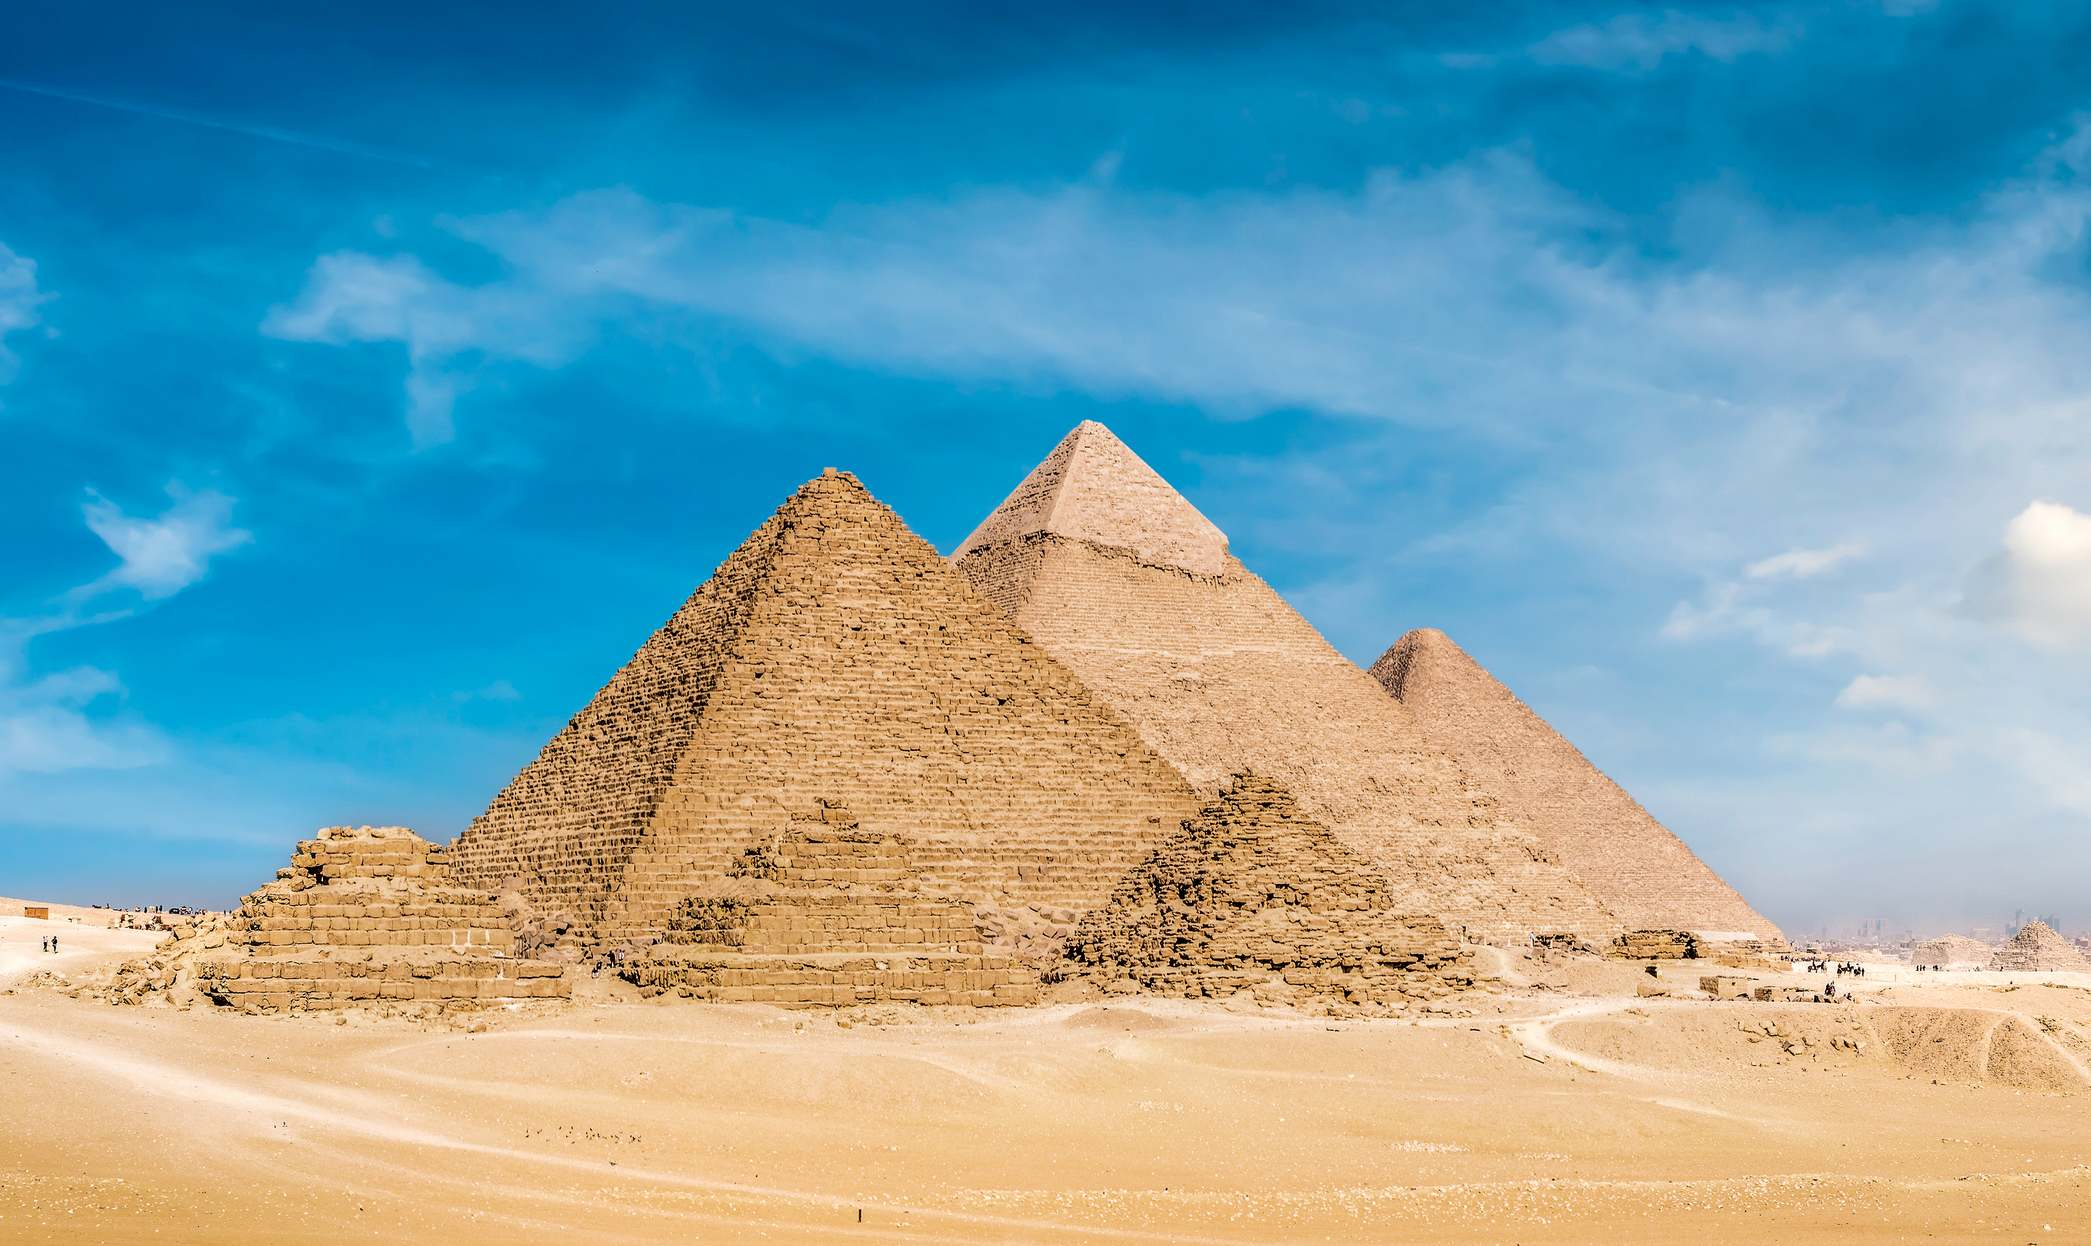 Giza pyramids, Cairo, Egypt, Africa. View of pyramids from the Giza Plateau © Image Credit: Feili Chen | Licensed from Dreamstime.Com (Editorial/Commercial Use Stock Photo)